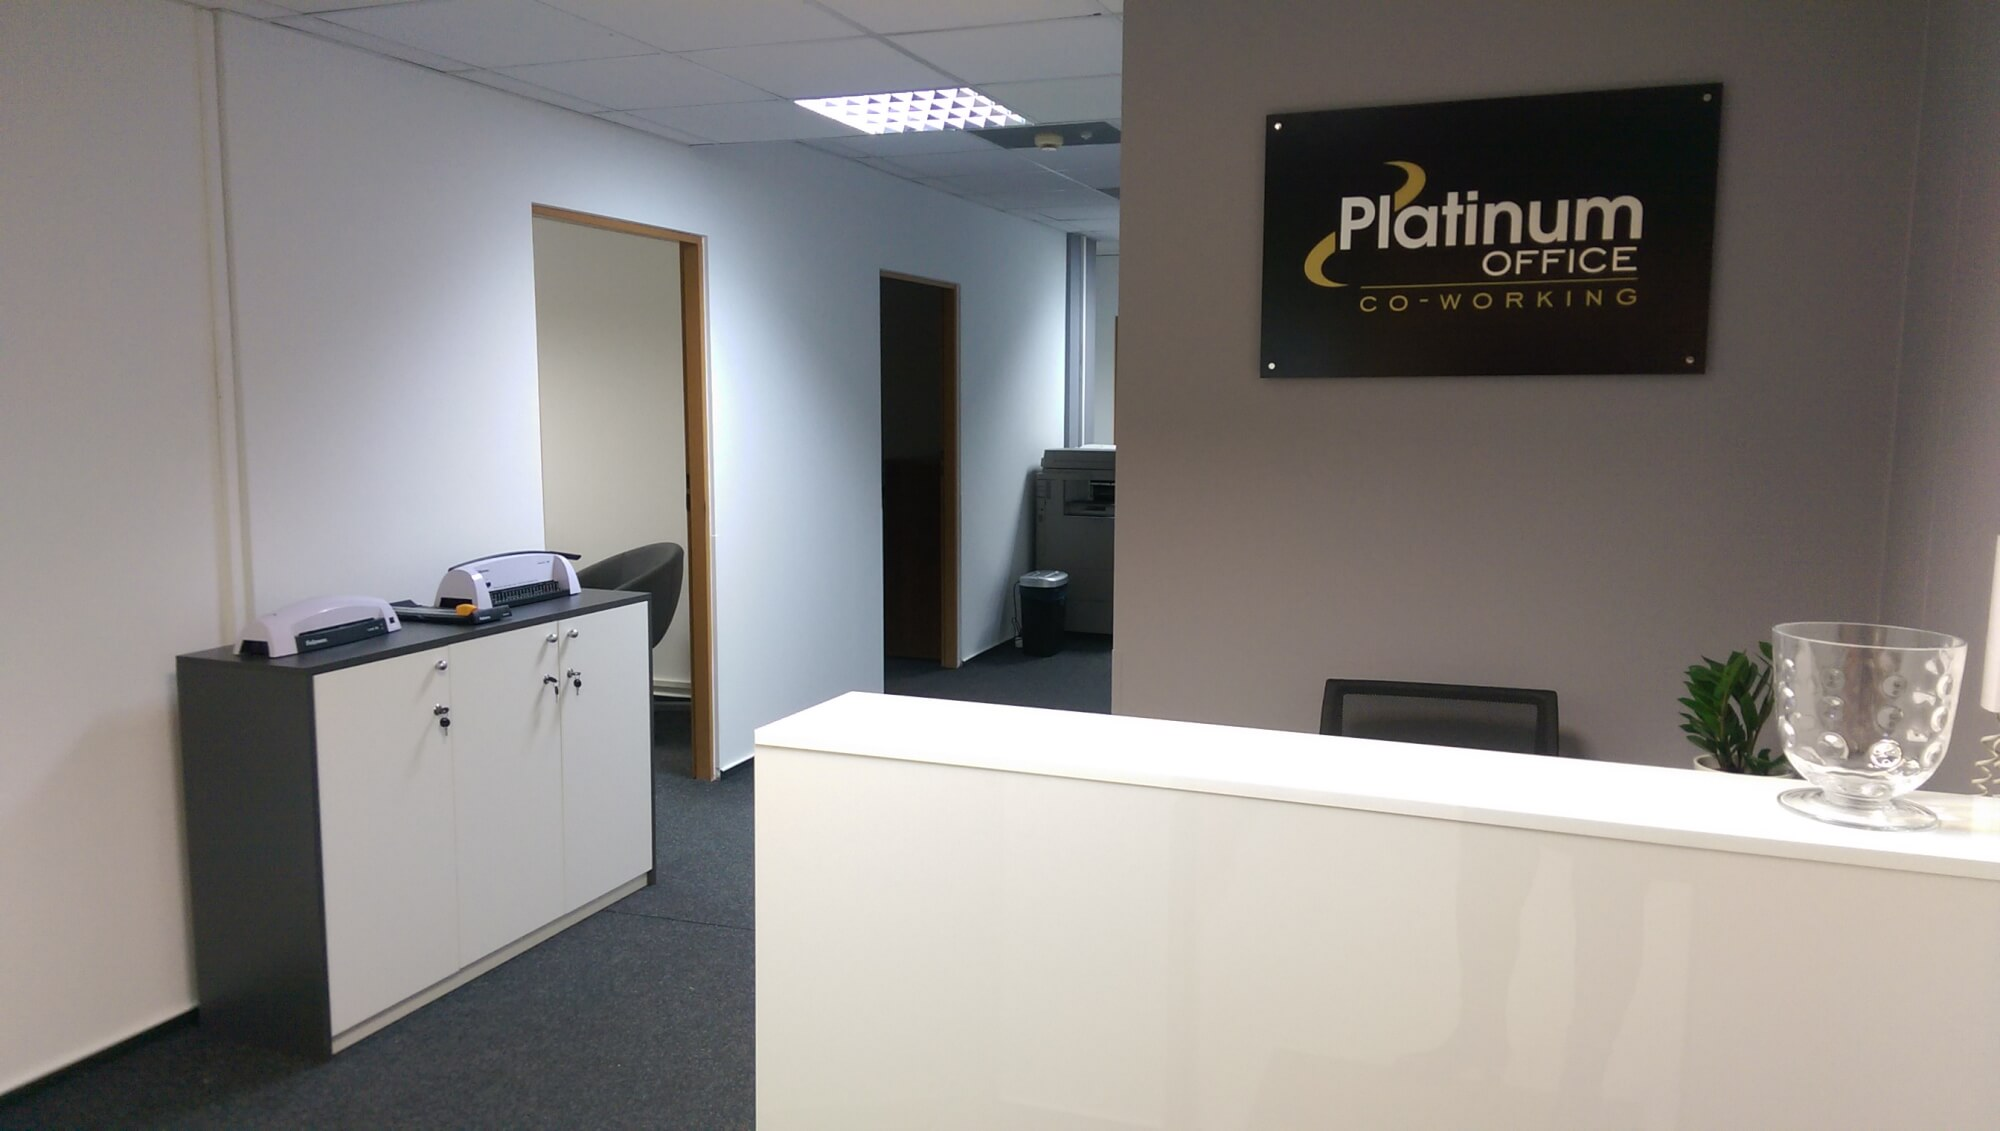 Conference Room - Platinum Office Co-Working - Coworking Space - Warszawa